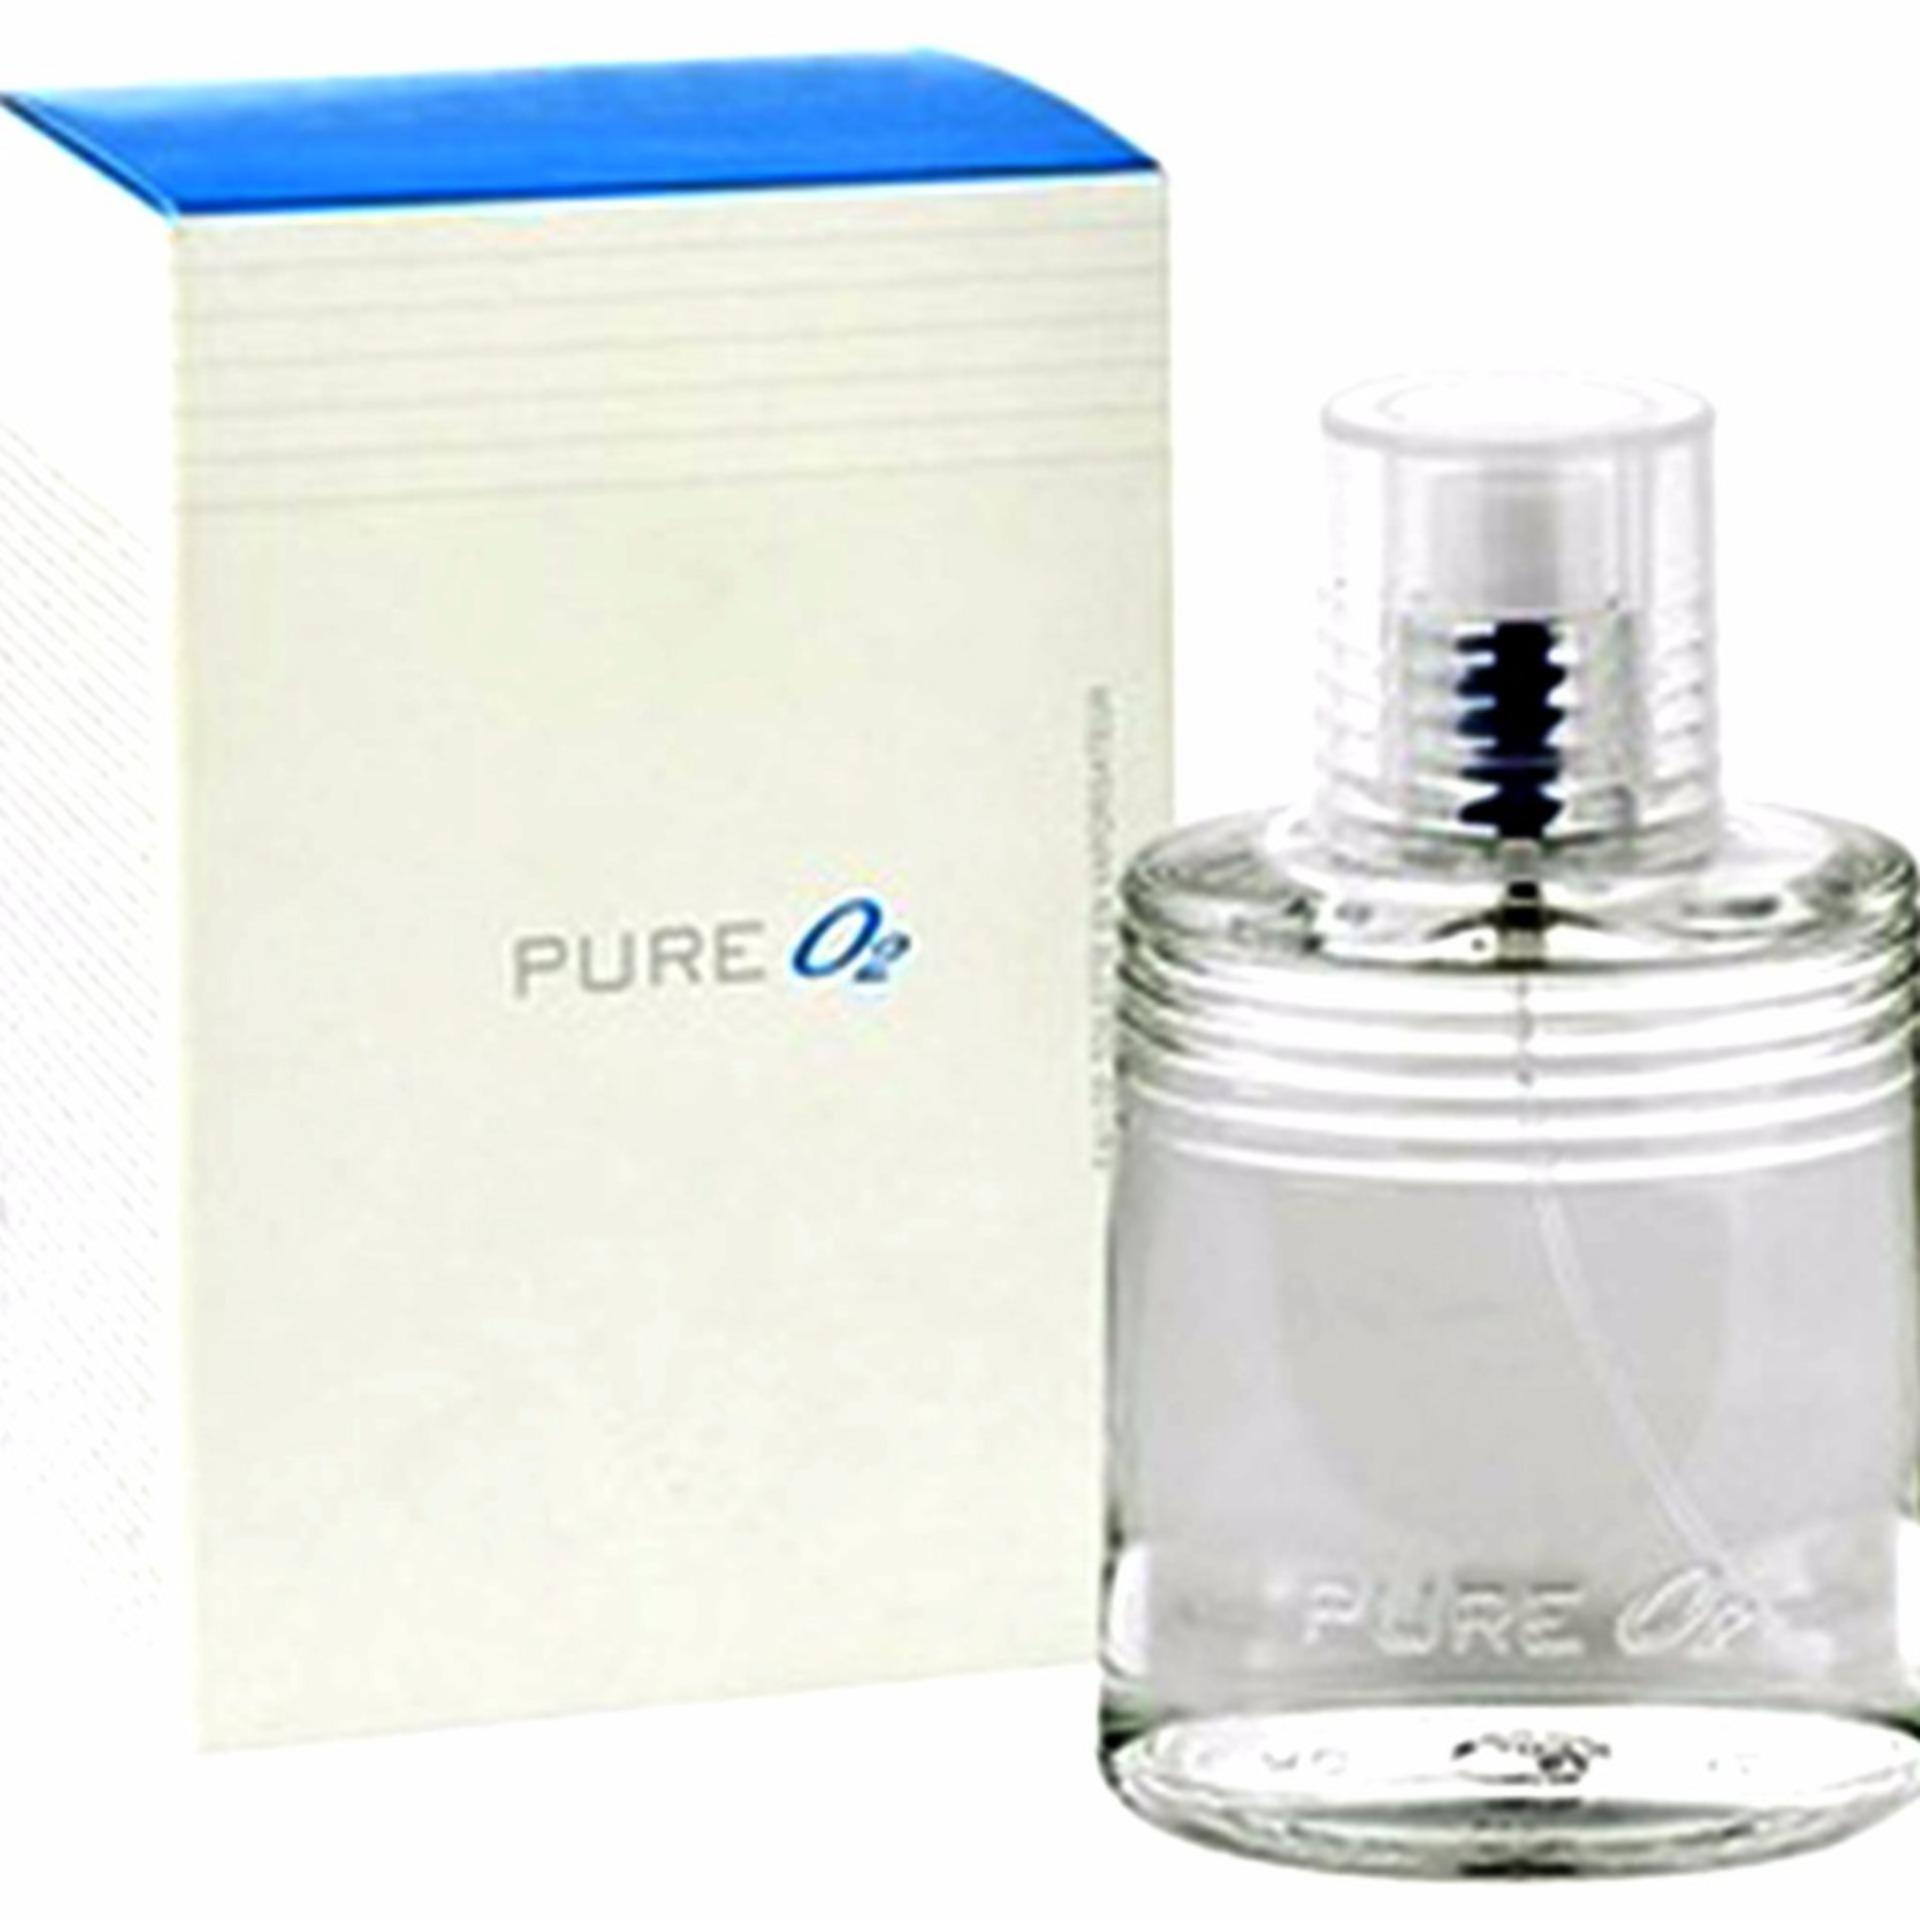 Nước hoa Nam FREE O2 for him 75ml